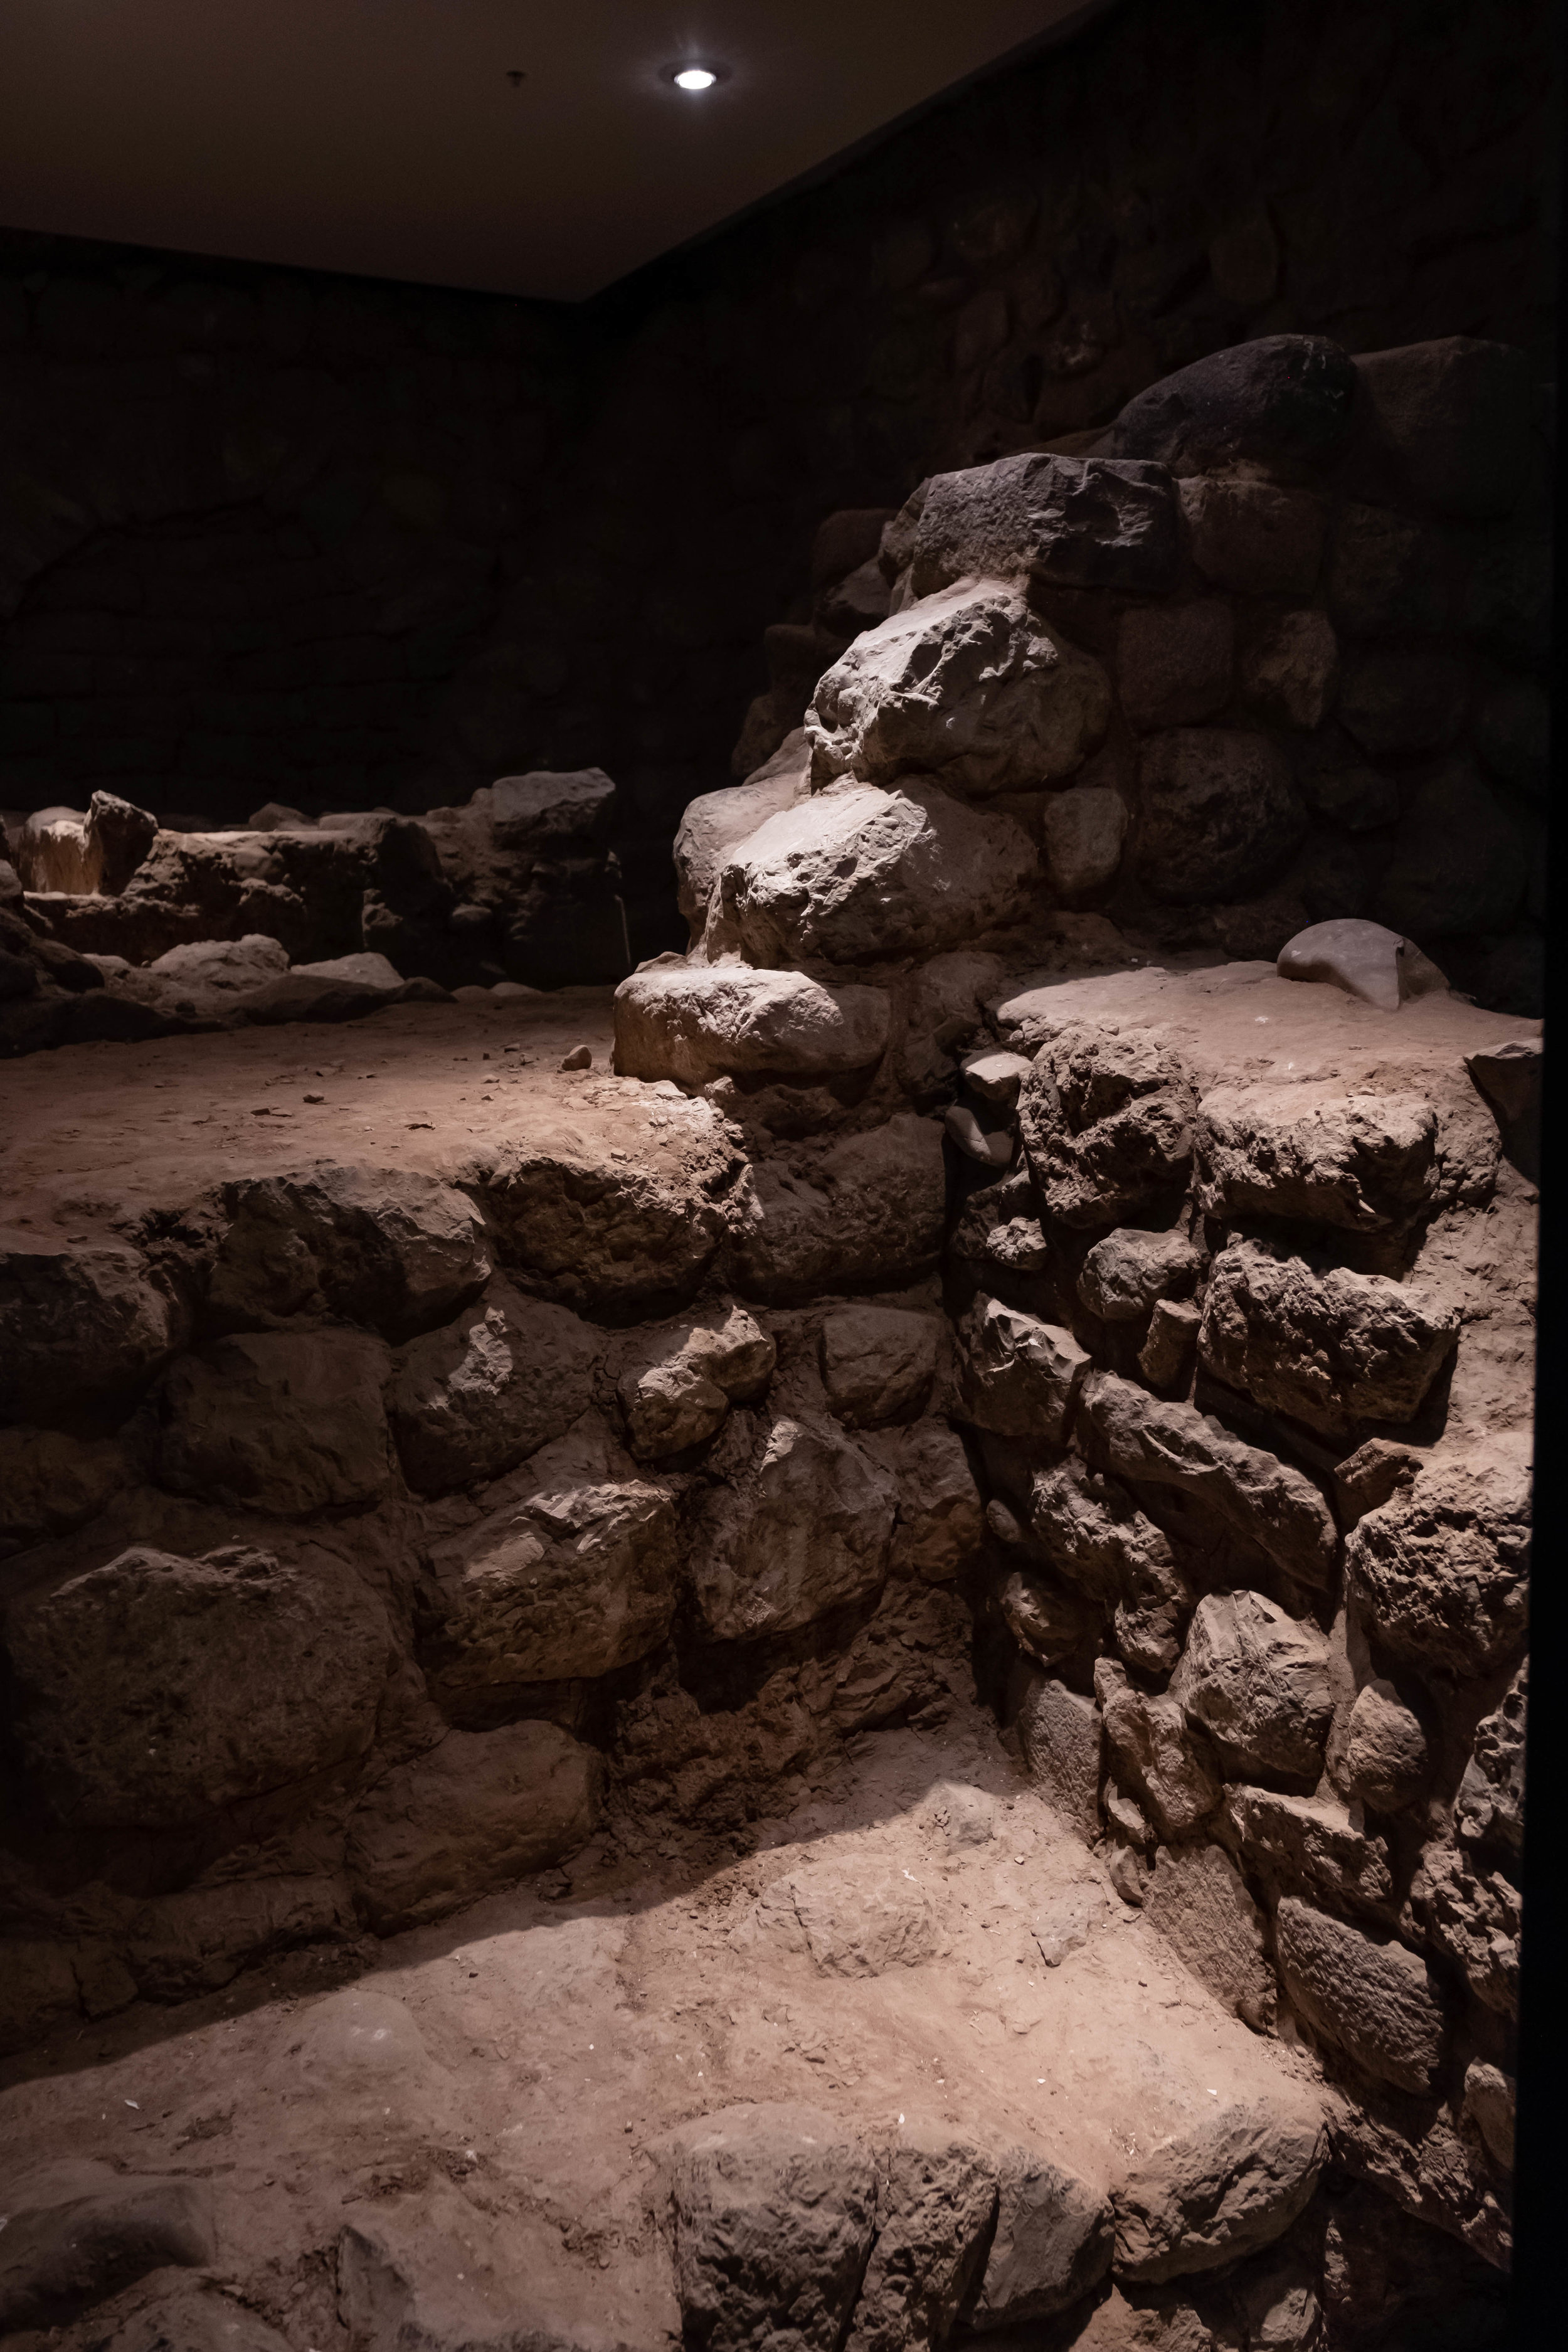 While the property was being renovated, many Incan ruins were discovered in the sub level section of the building, today it is a small-scale museum that encompasses century-old walls.